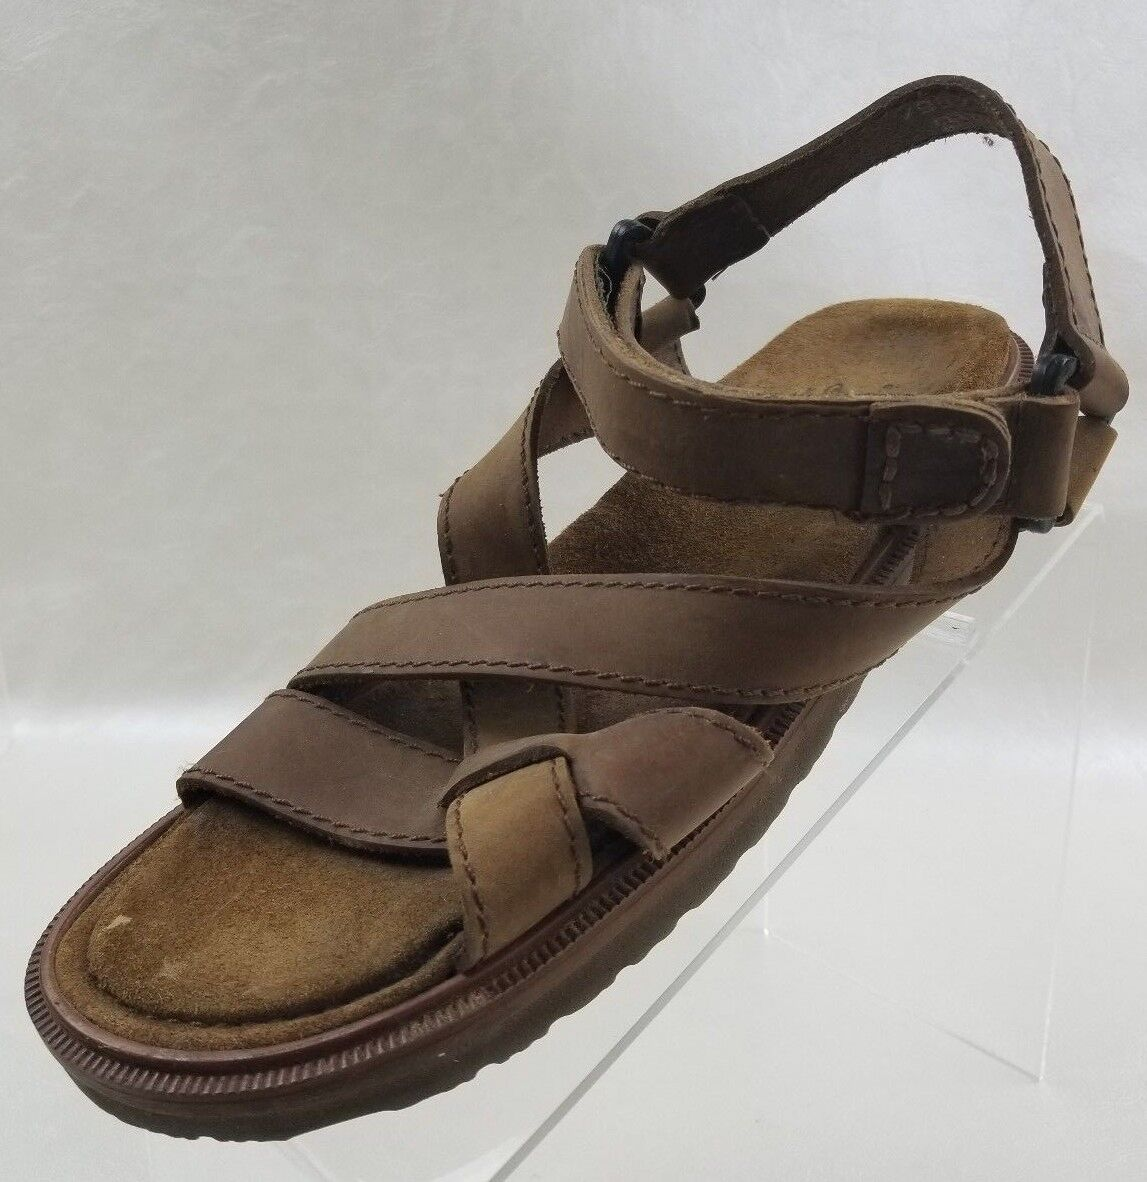 G H Bass Sandals Fisherman Open Toe Mens Brown Leather Slip On shoes Size 9.5M